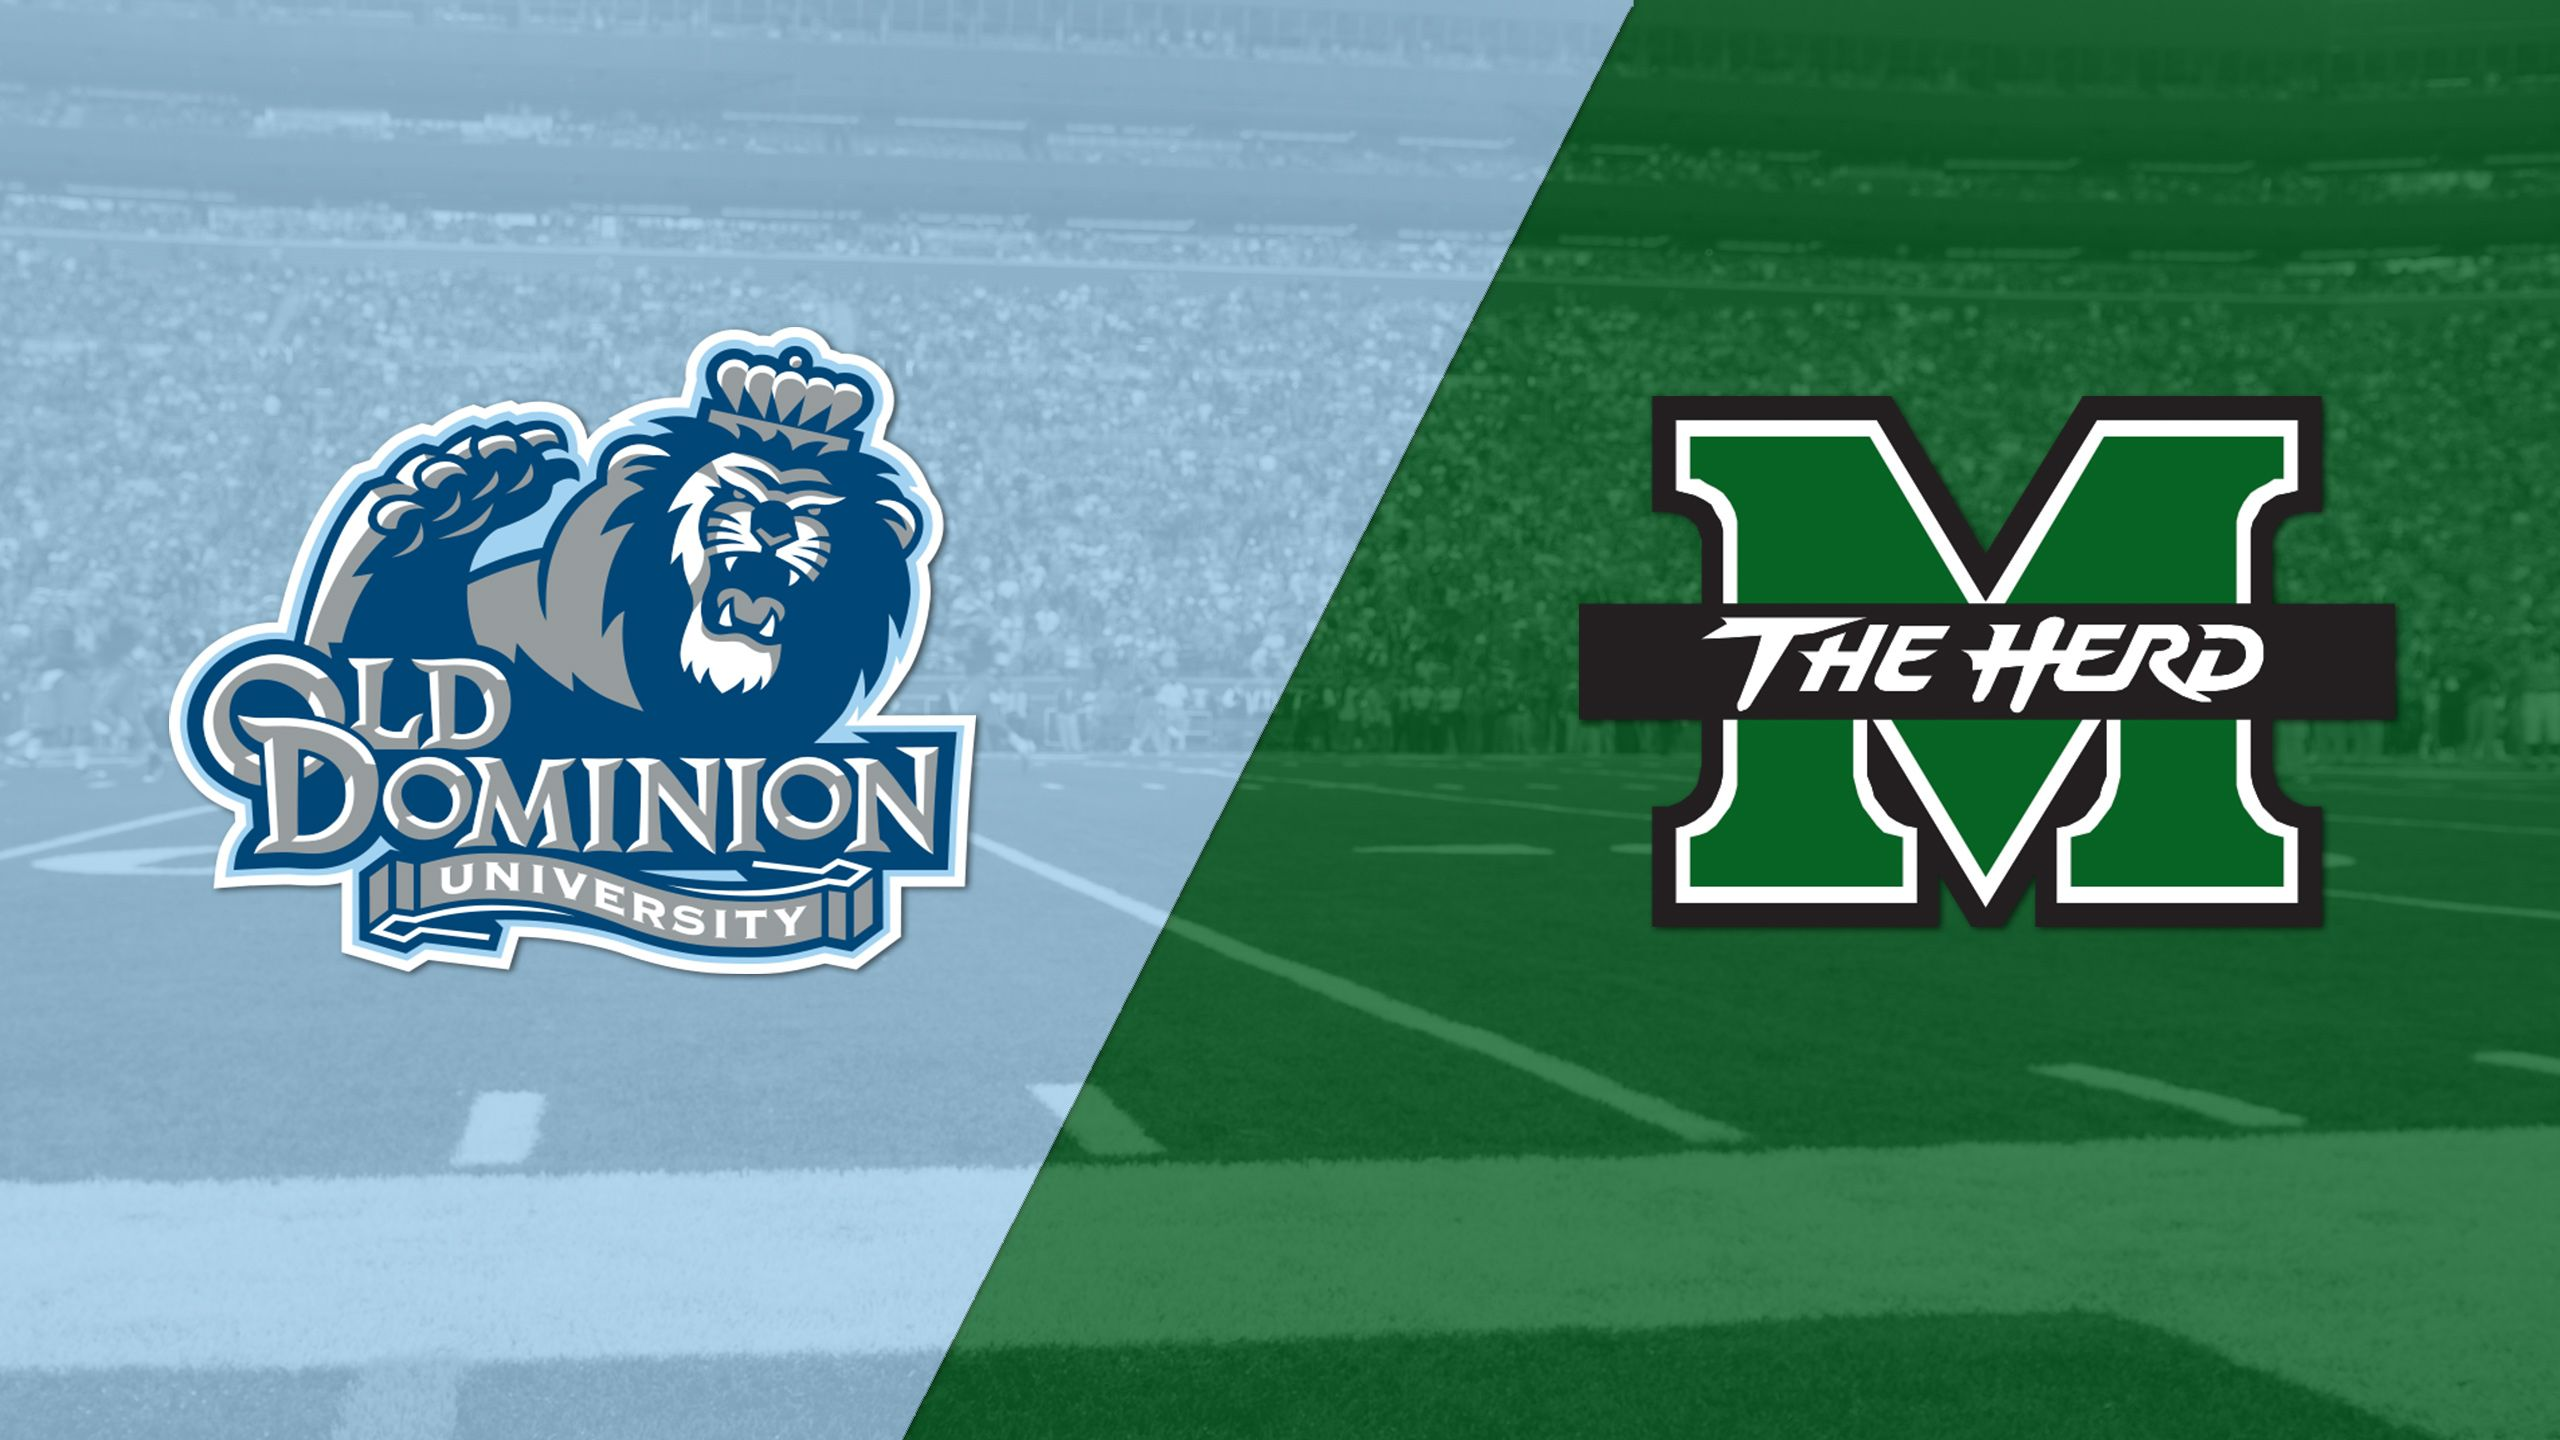 Old Dominion vs. Marshall (Football)